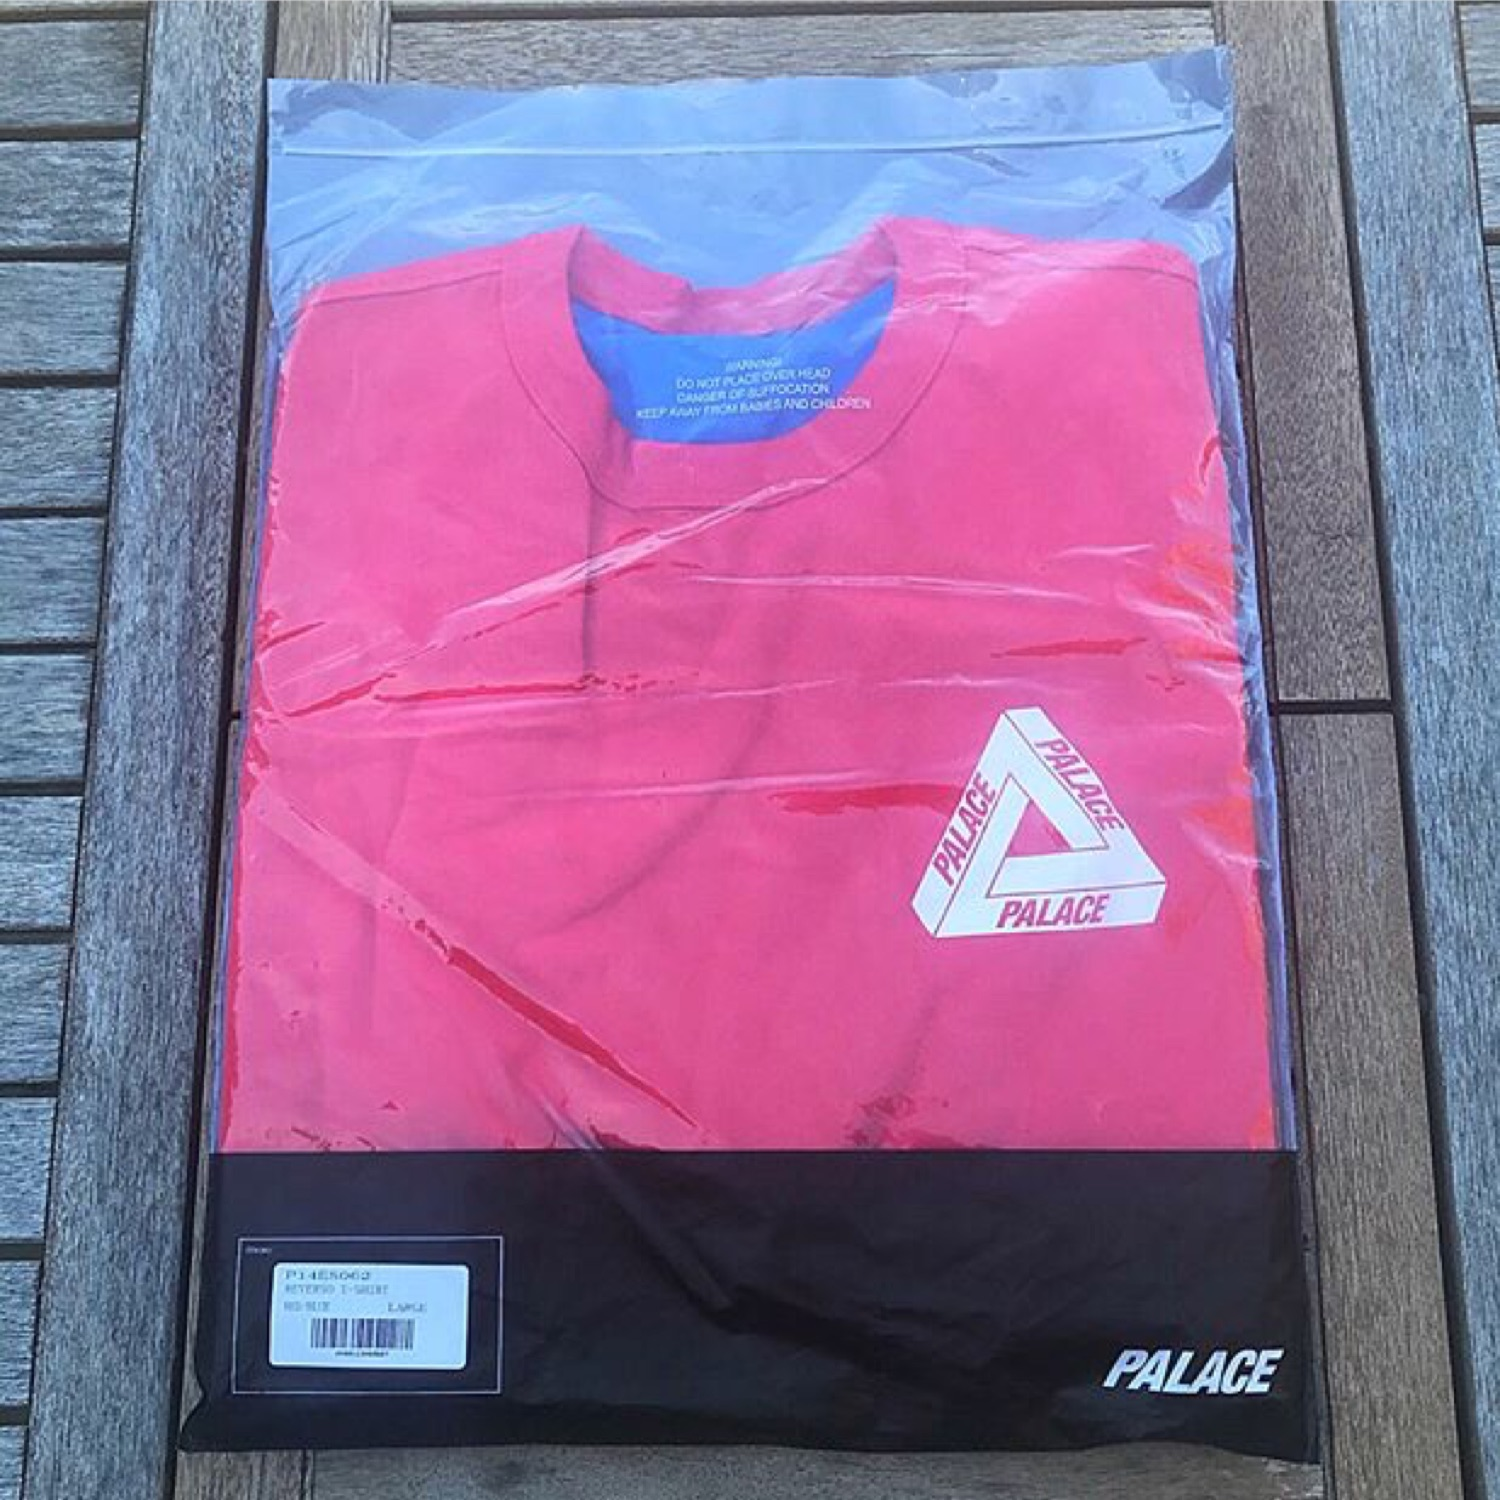 9d300598a9a3 Palace Reverso T-Shirt Red Blue Size M And L